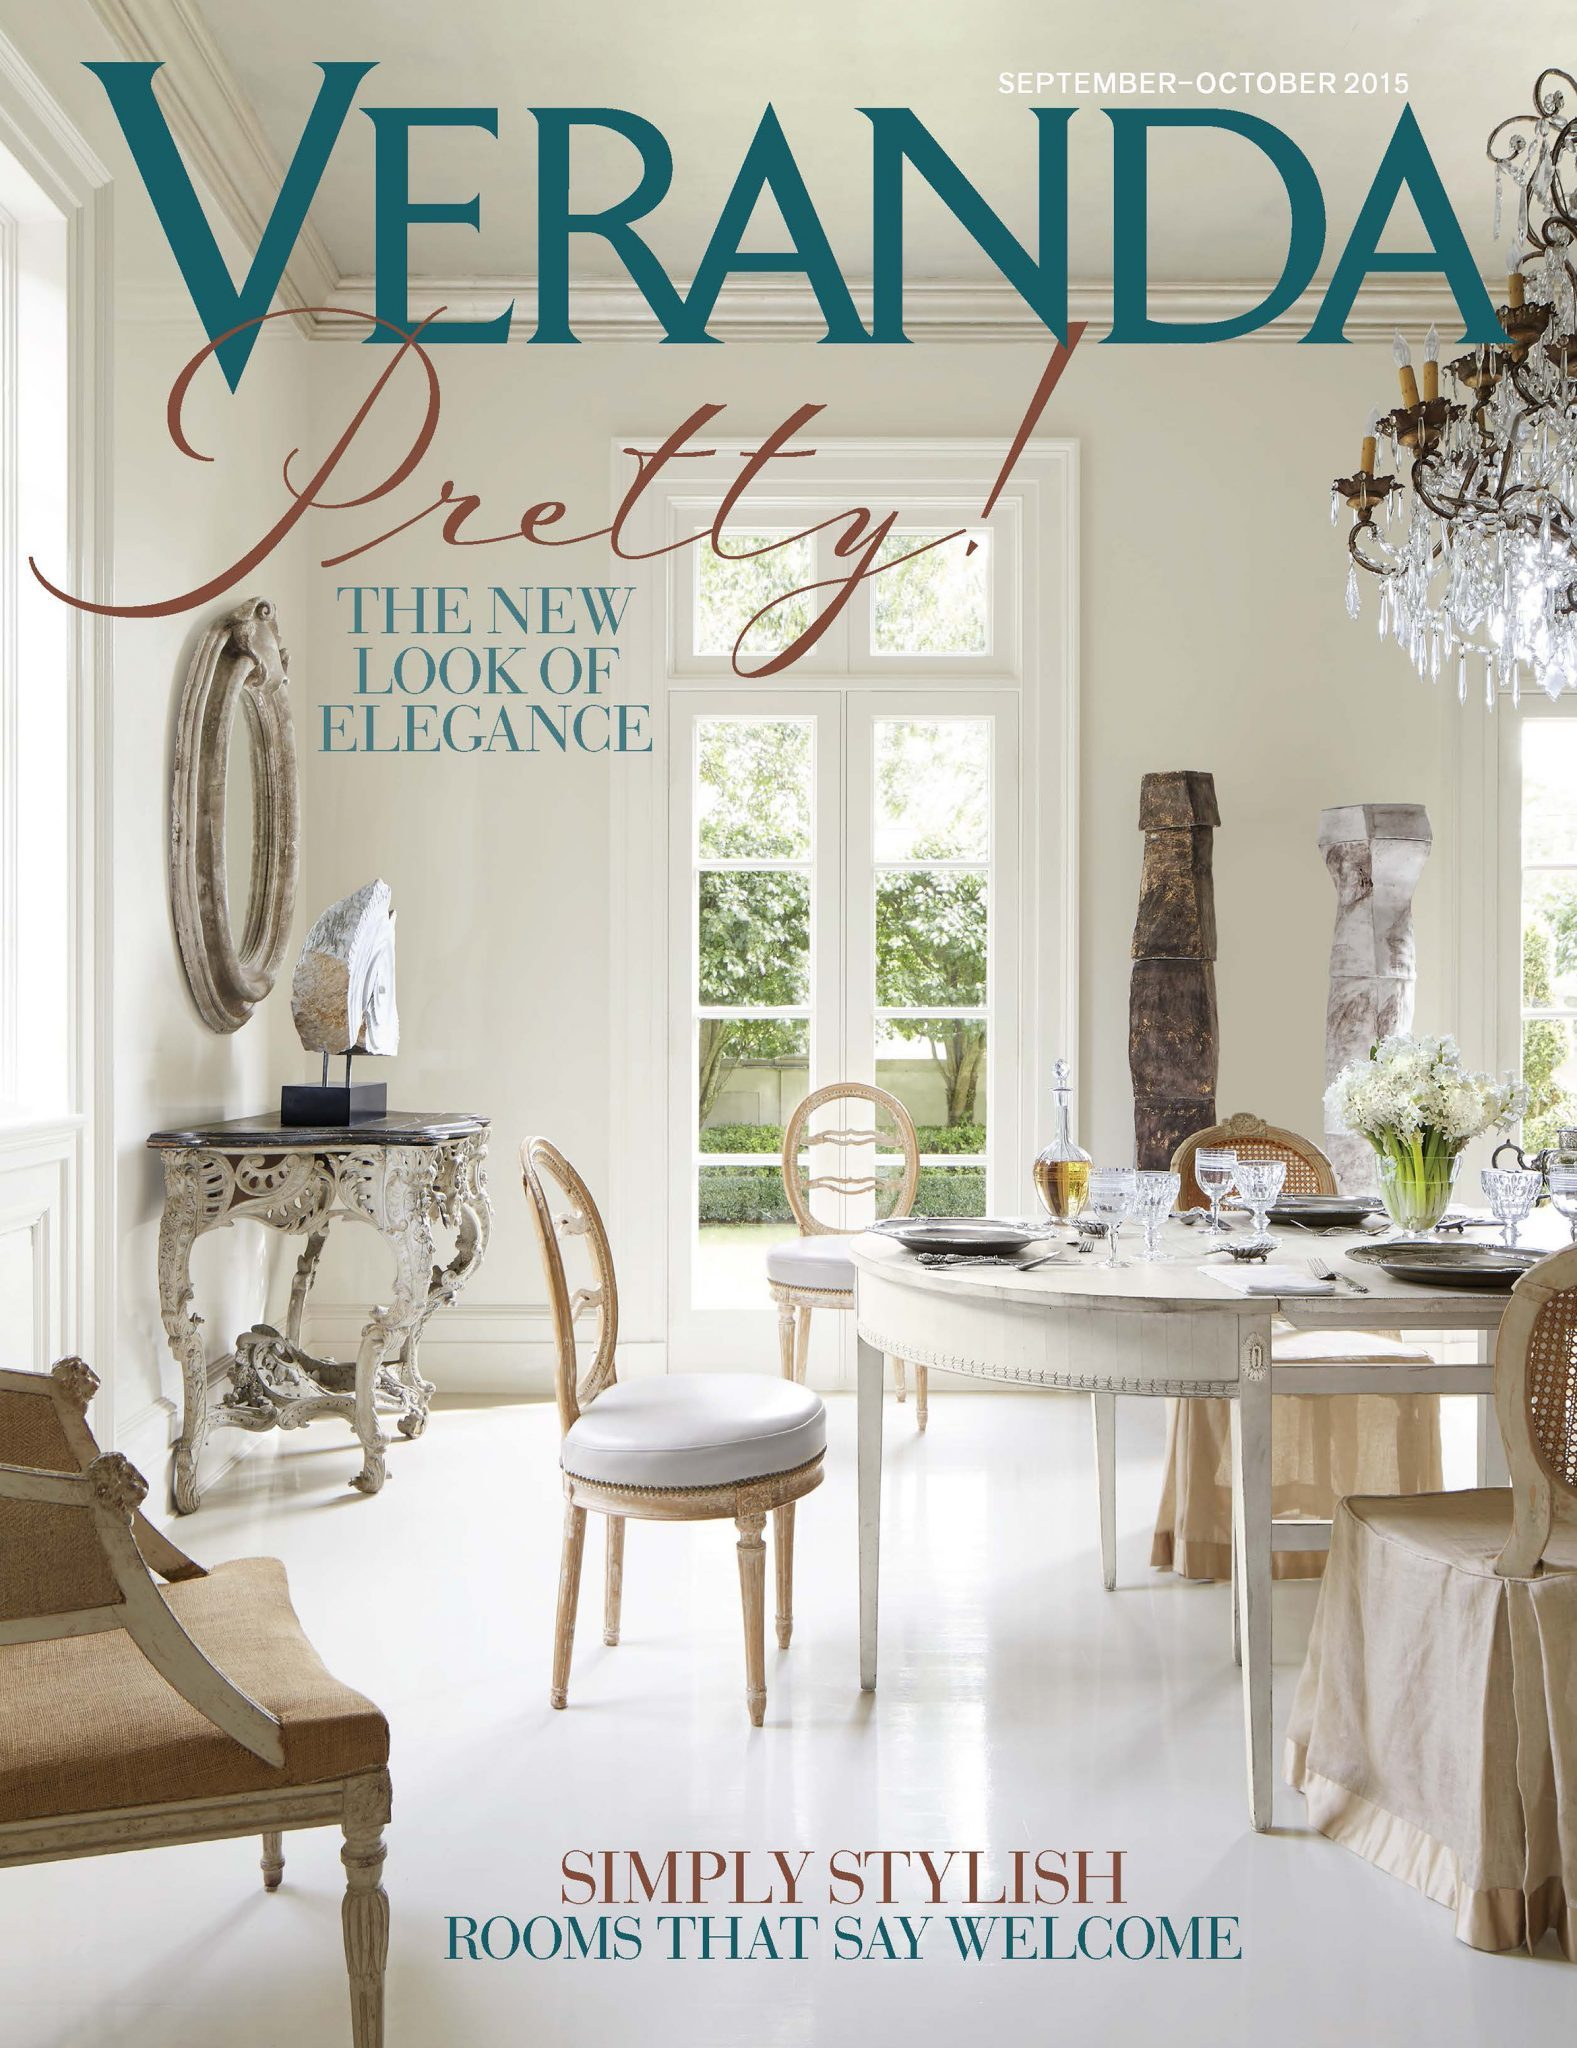 Tara Shaw on the cover of Veranda